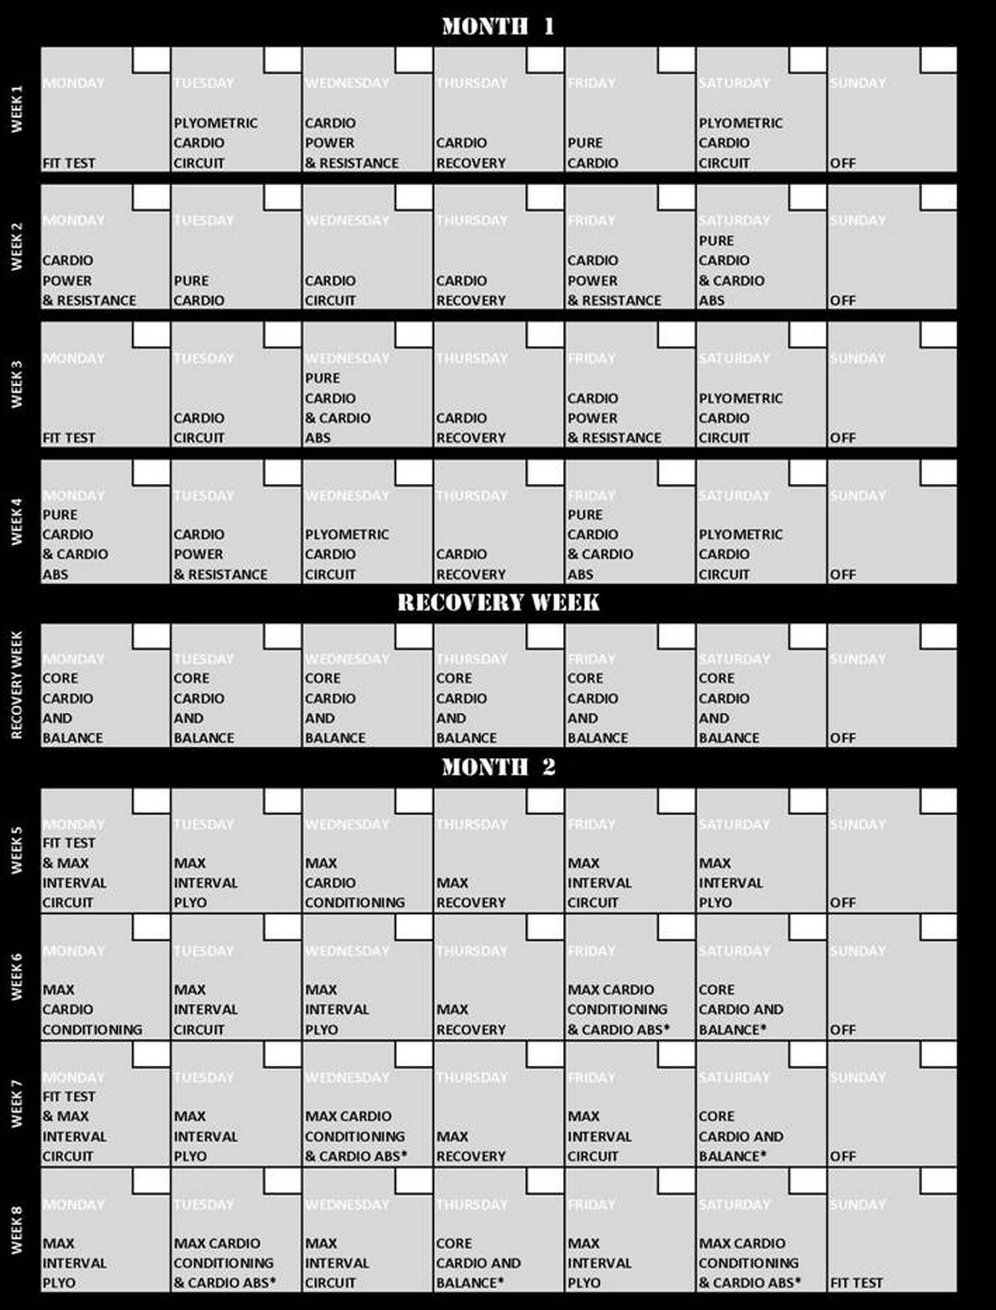 Shaun T Insane Abs Calendar Schedule | Template Calendar Printable within Shaun T Insane Abs Calendar Schedule